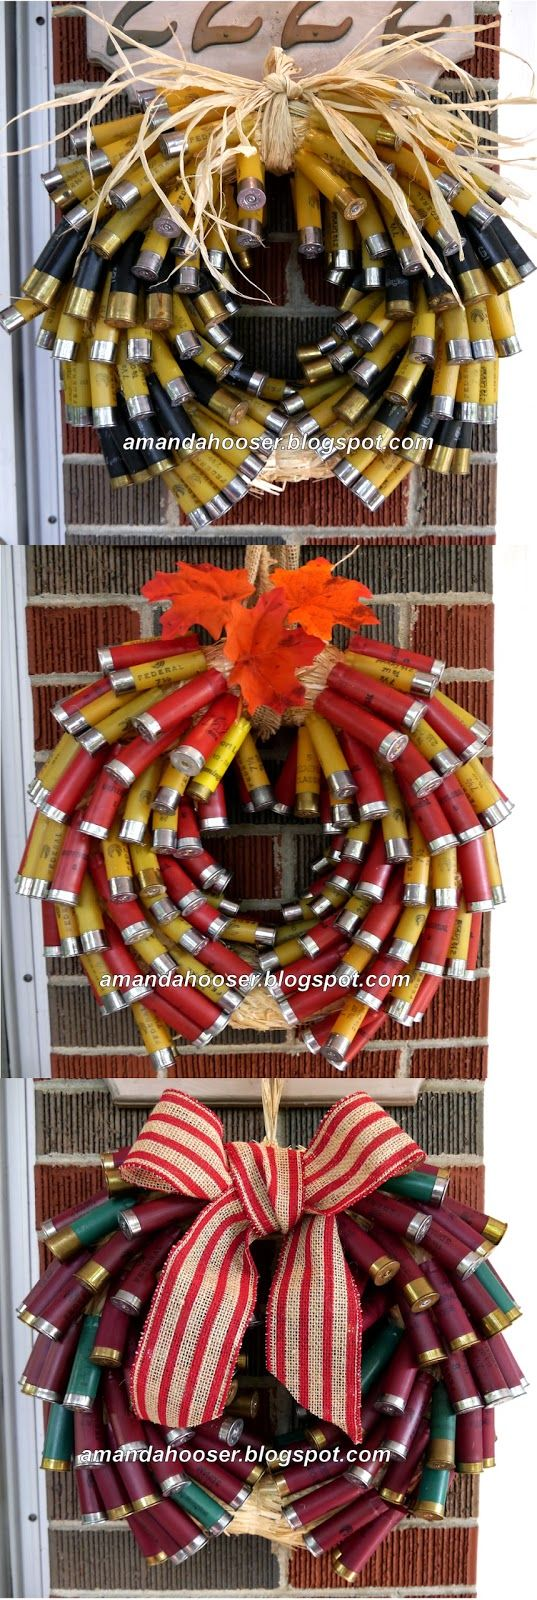 46 best things to do with shotgun shells images on